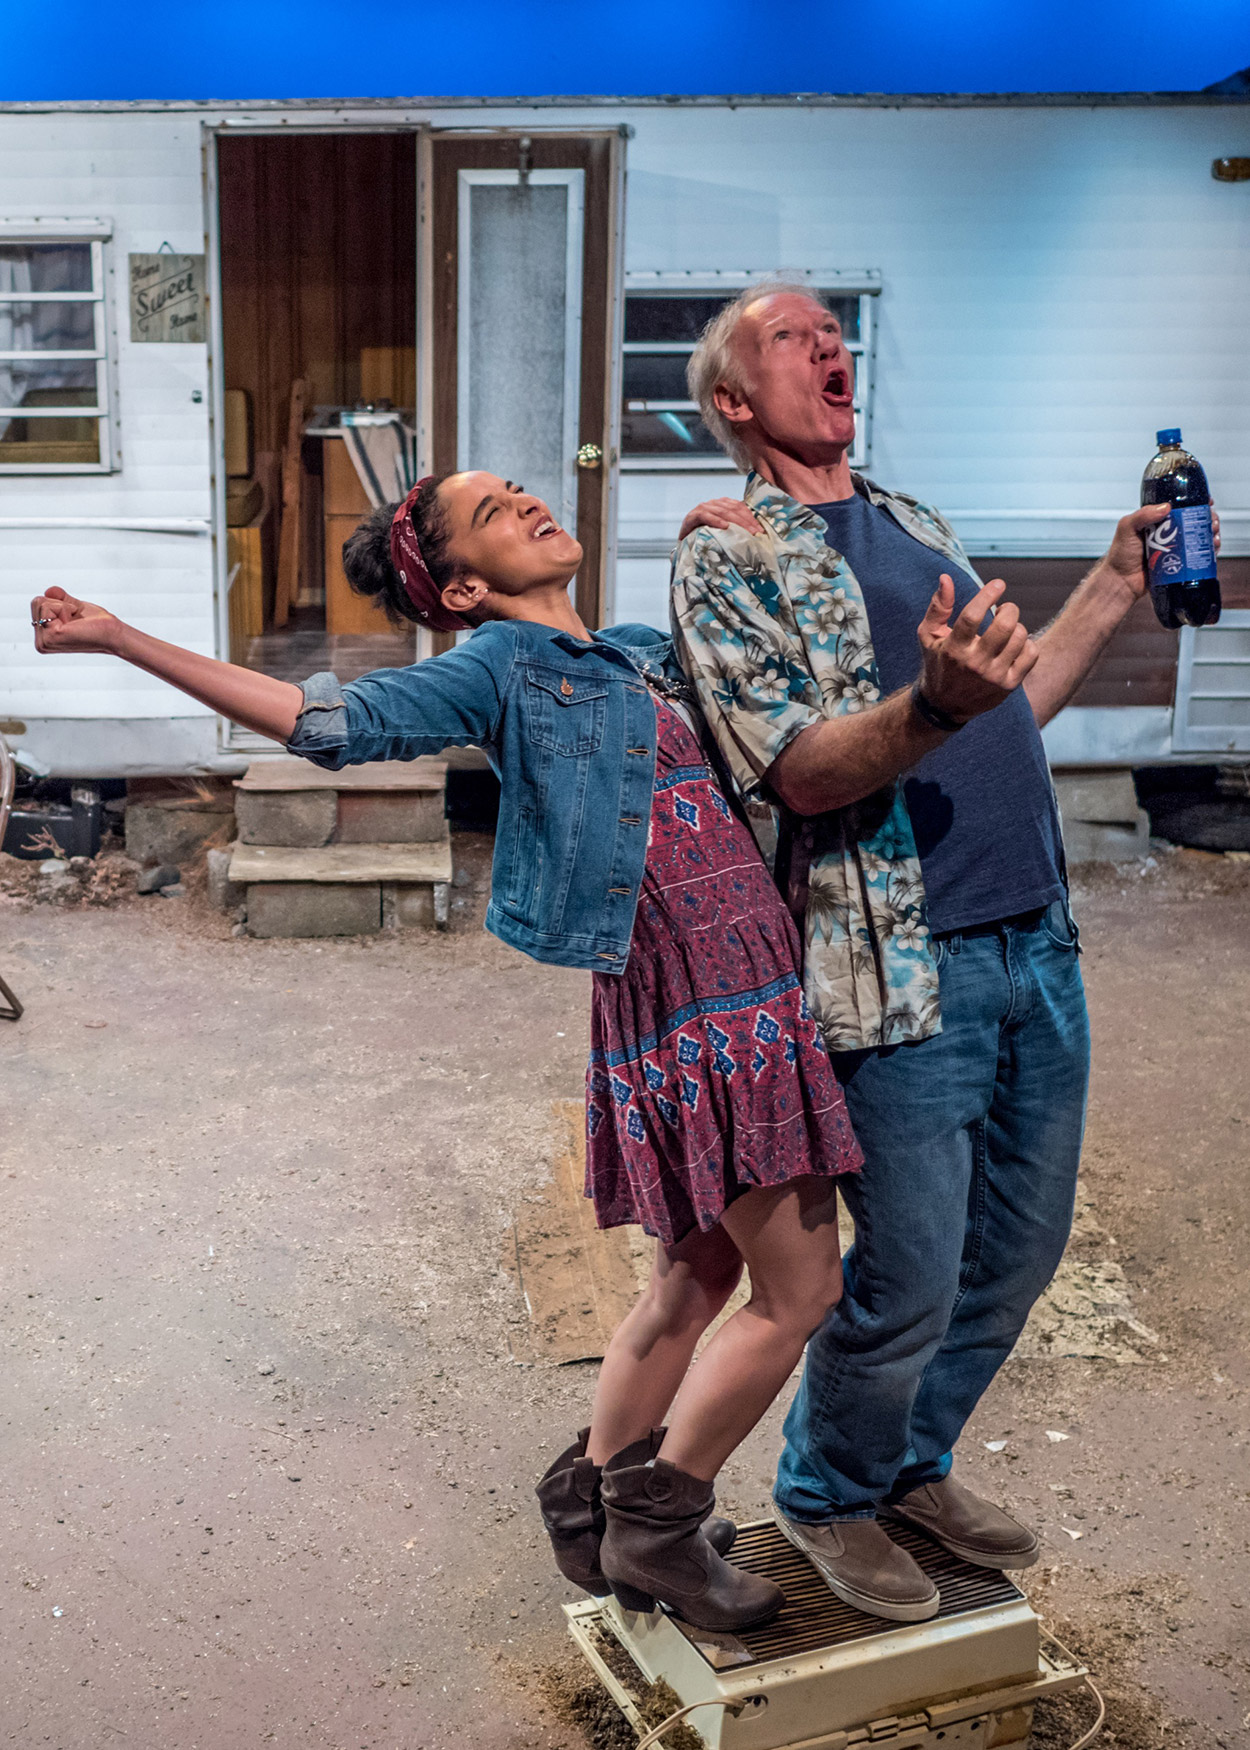 Production Photo from Las Cruces (2016). Set in the desert, a small silver mobile home is at the background. A young woman and an older man stand on an old air conditioning unit, howling up to the sky.